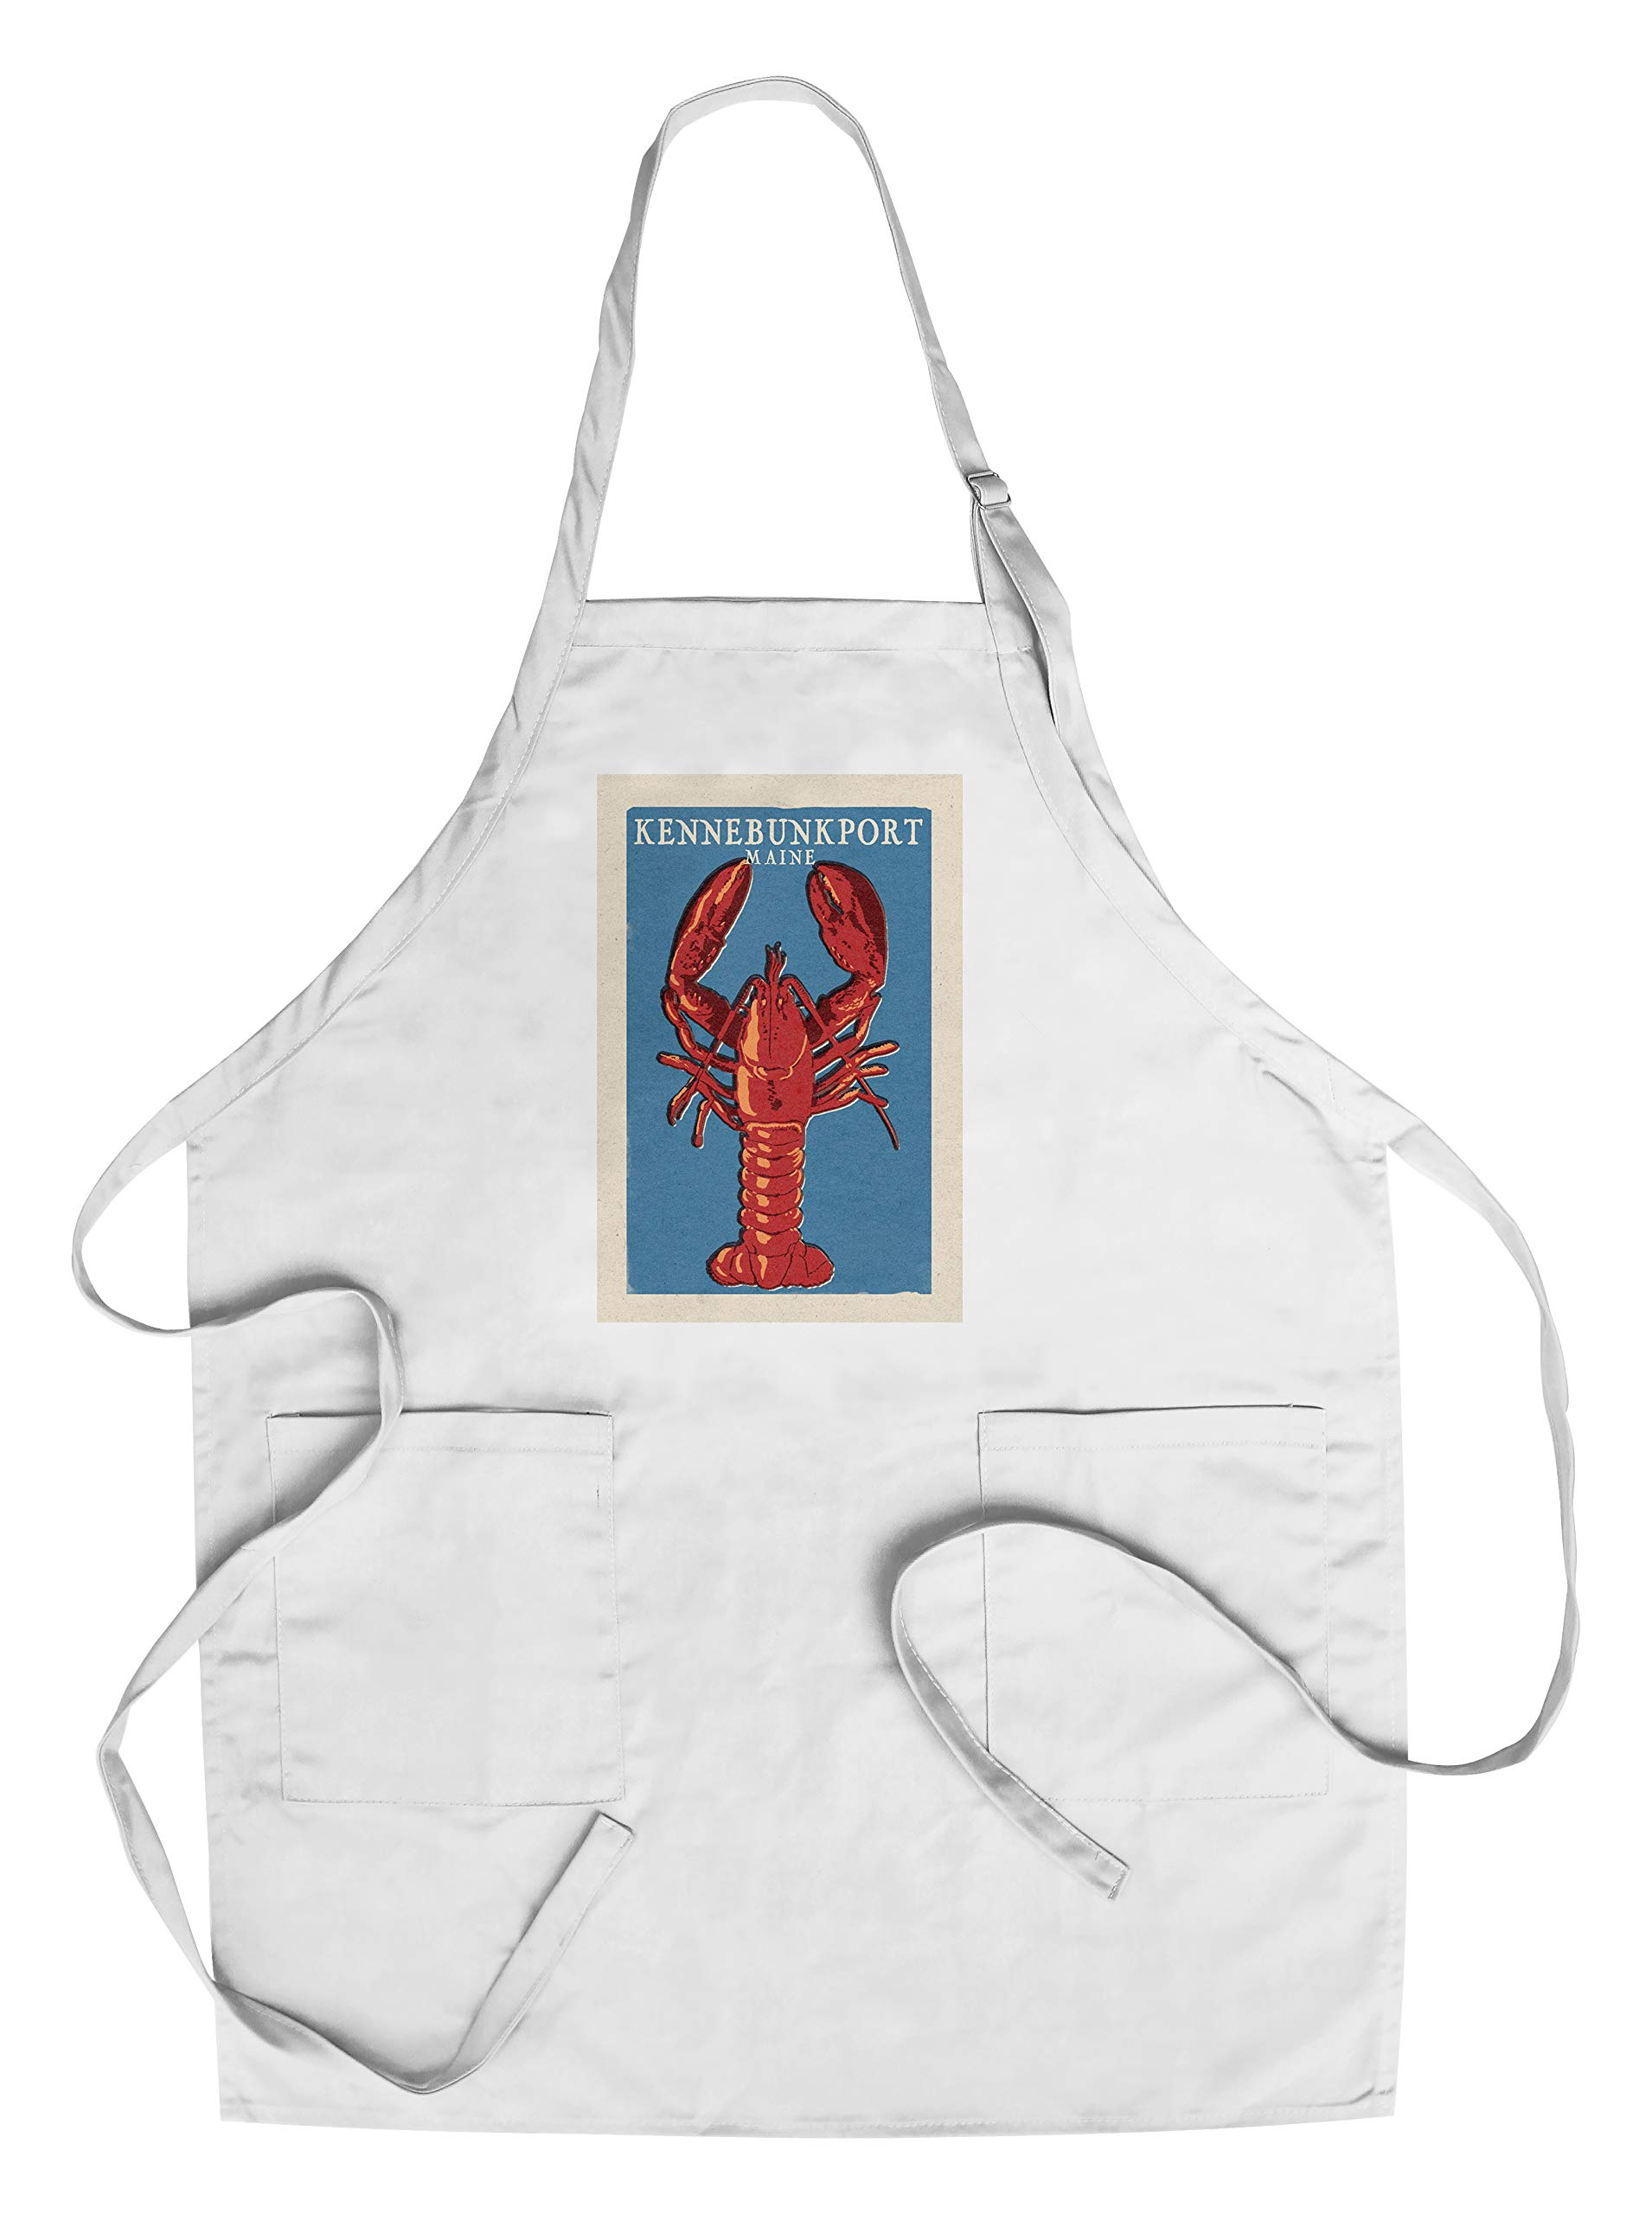 Kennebunkport, Maine - Lobster Woodblock (Cotton/Polyester Chef's Apron)